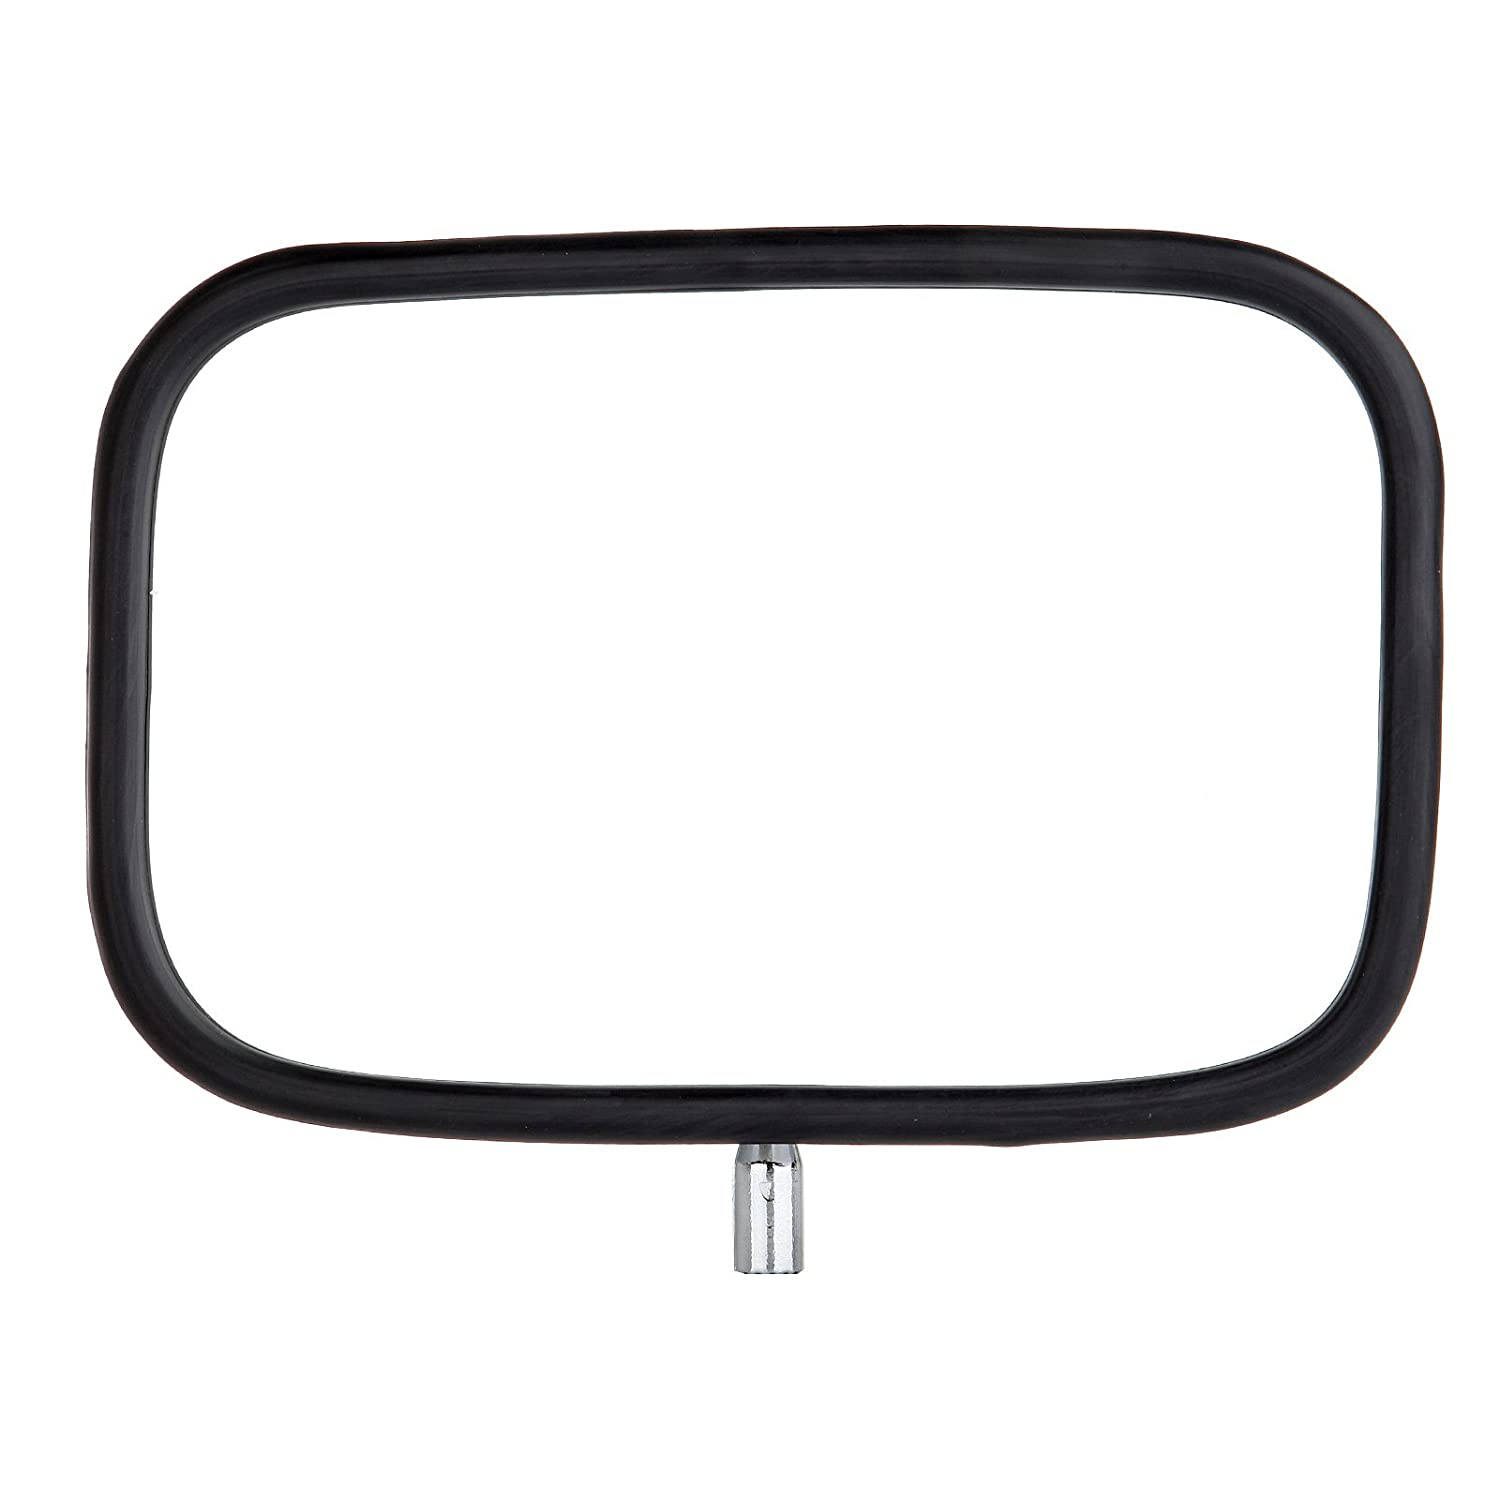 Scitoo Left//Driver Right//Passenger Manual Side View Mirrors Stainless Steel fit 80-96 Ford F150 F250 F350 Truck Pickup Pair Set